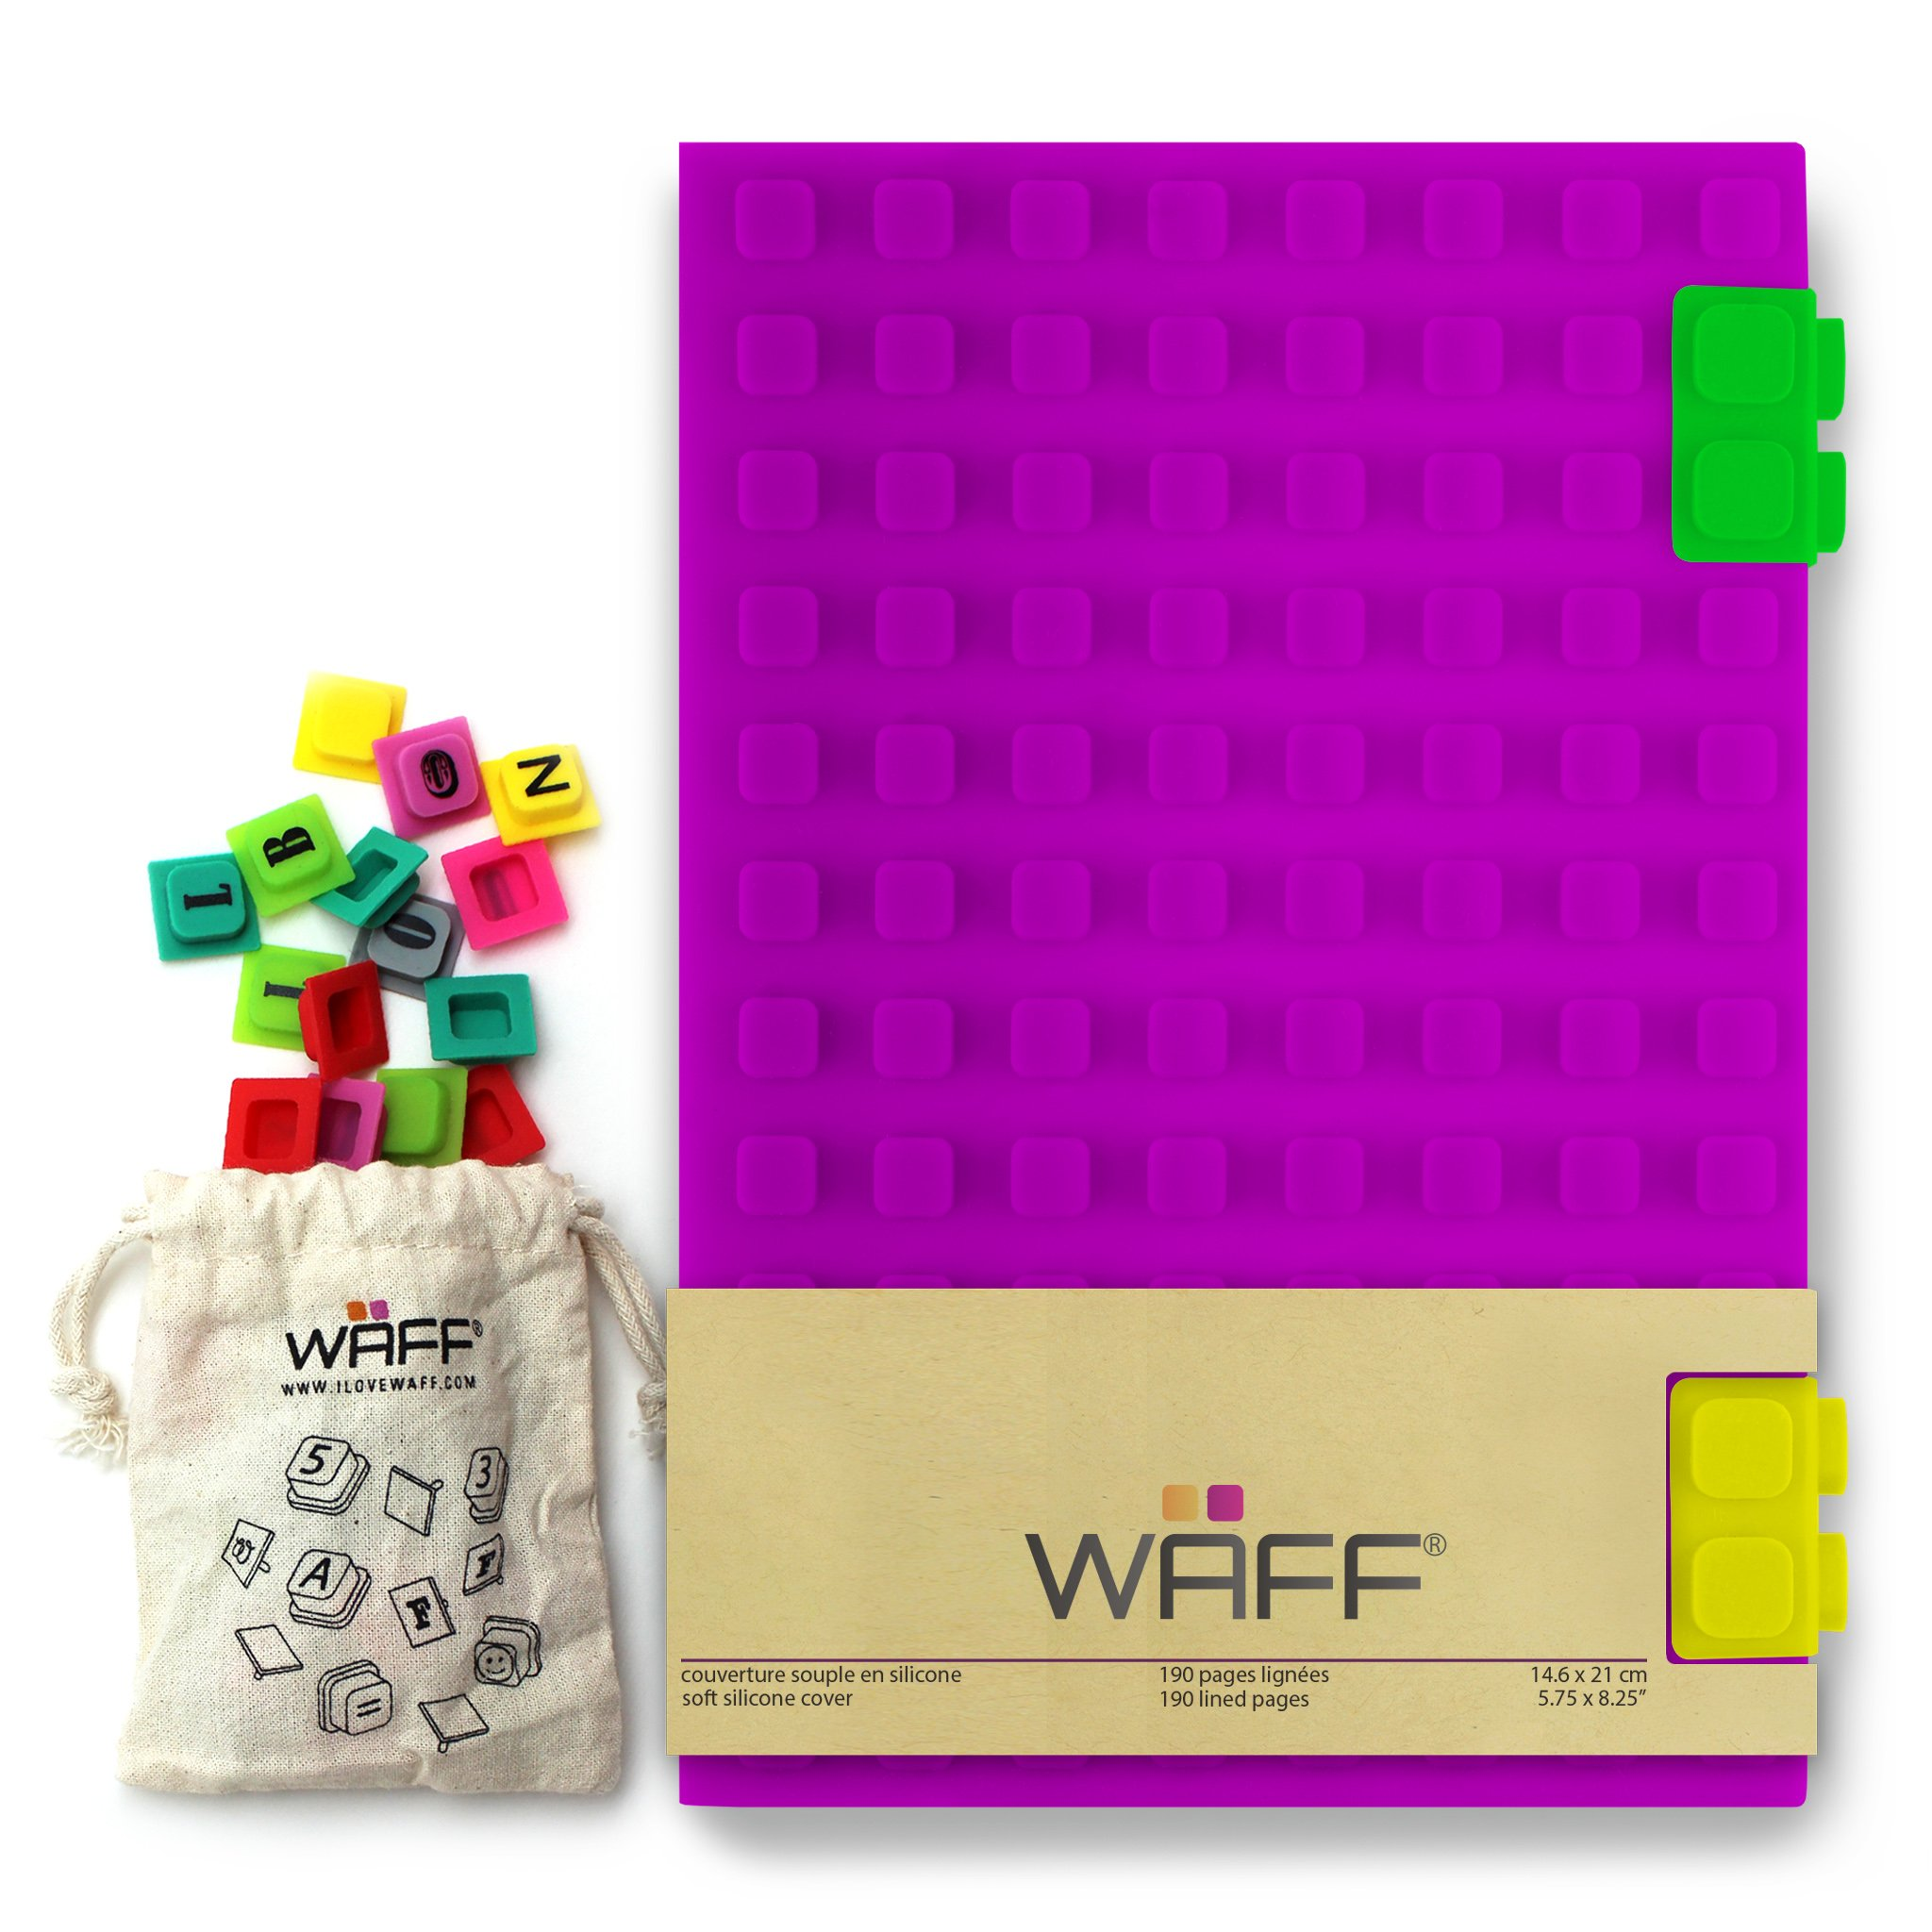 WAFF, Soft Silicone Cube Tiles And Notebook / Journal Combo, Large, 8.25'' x 5.5'' - Purple by WAFF